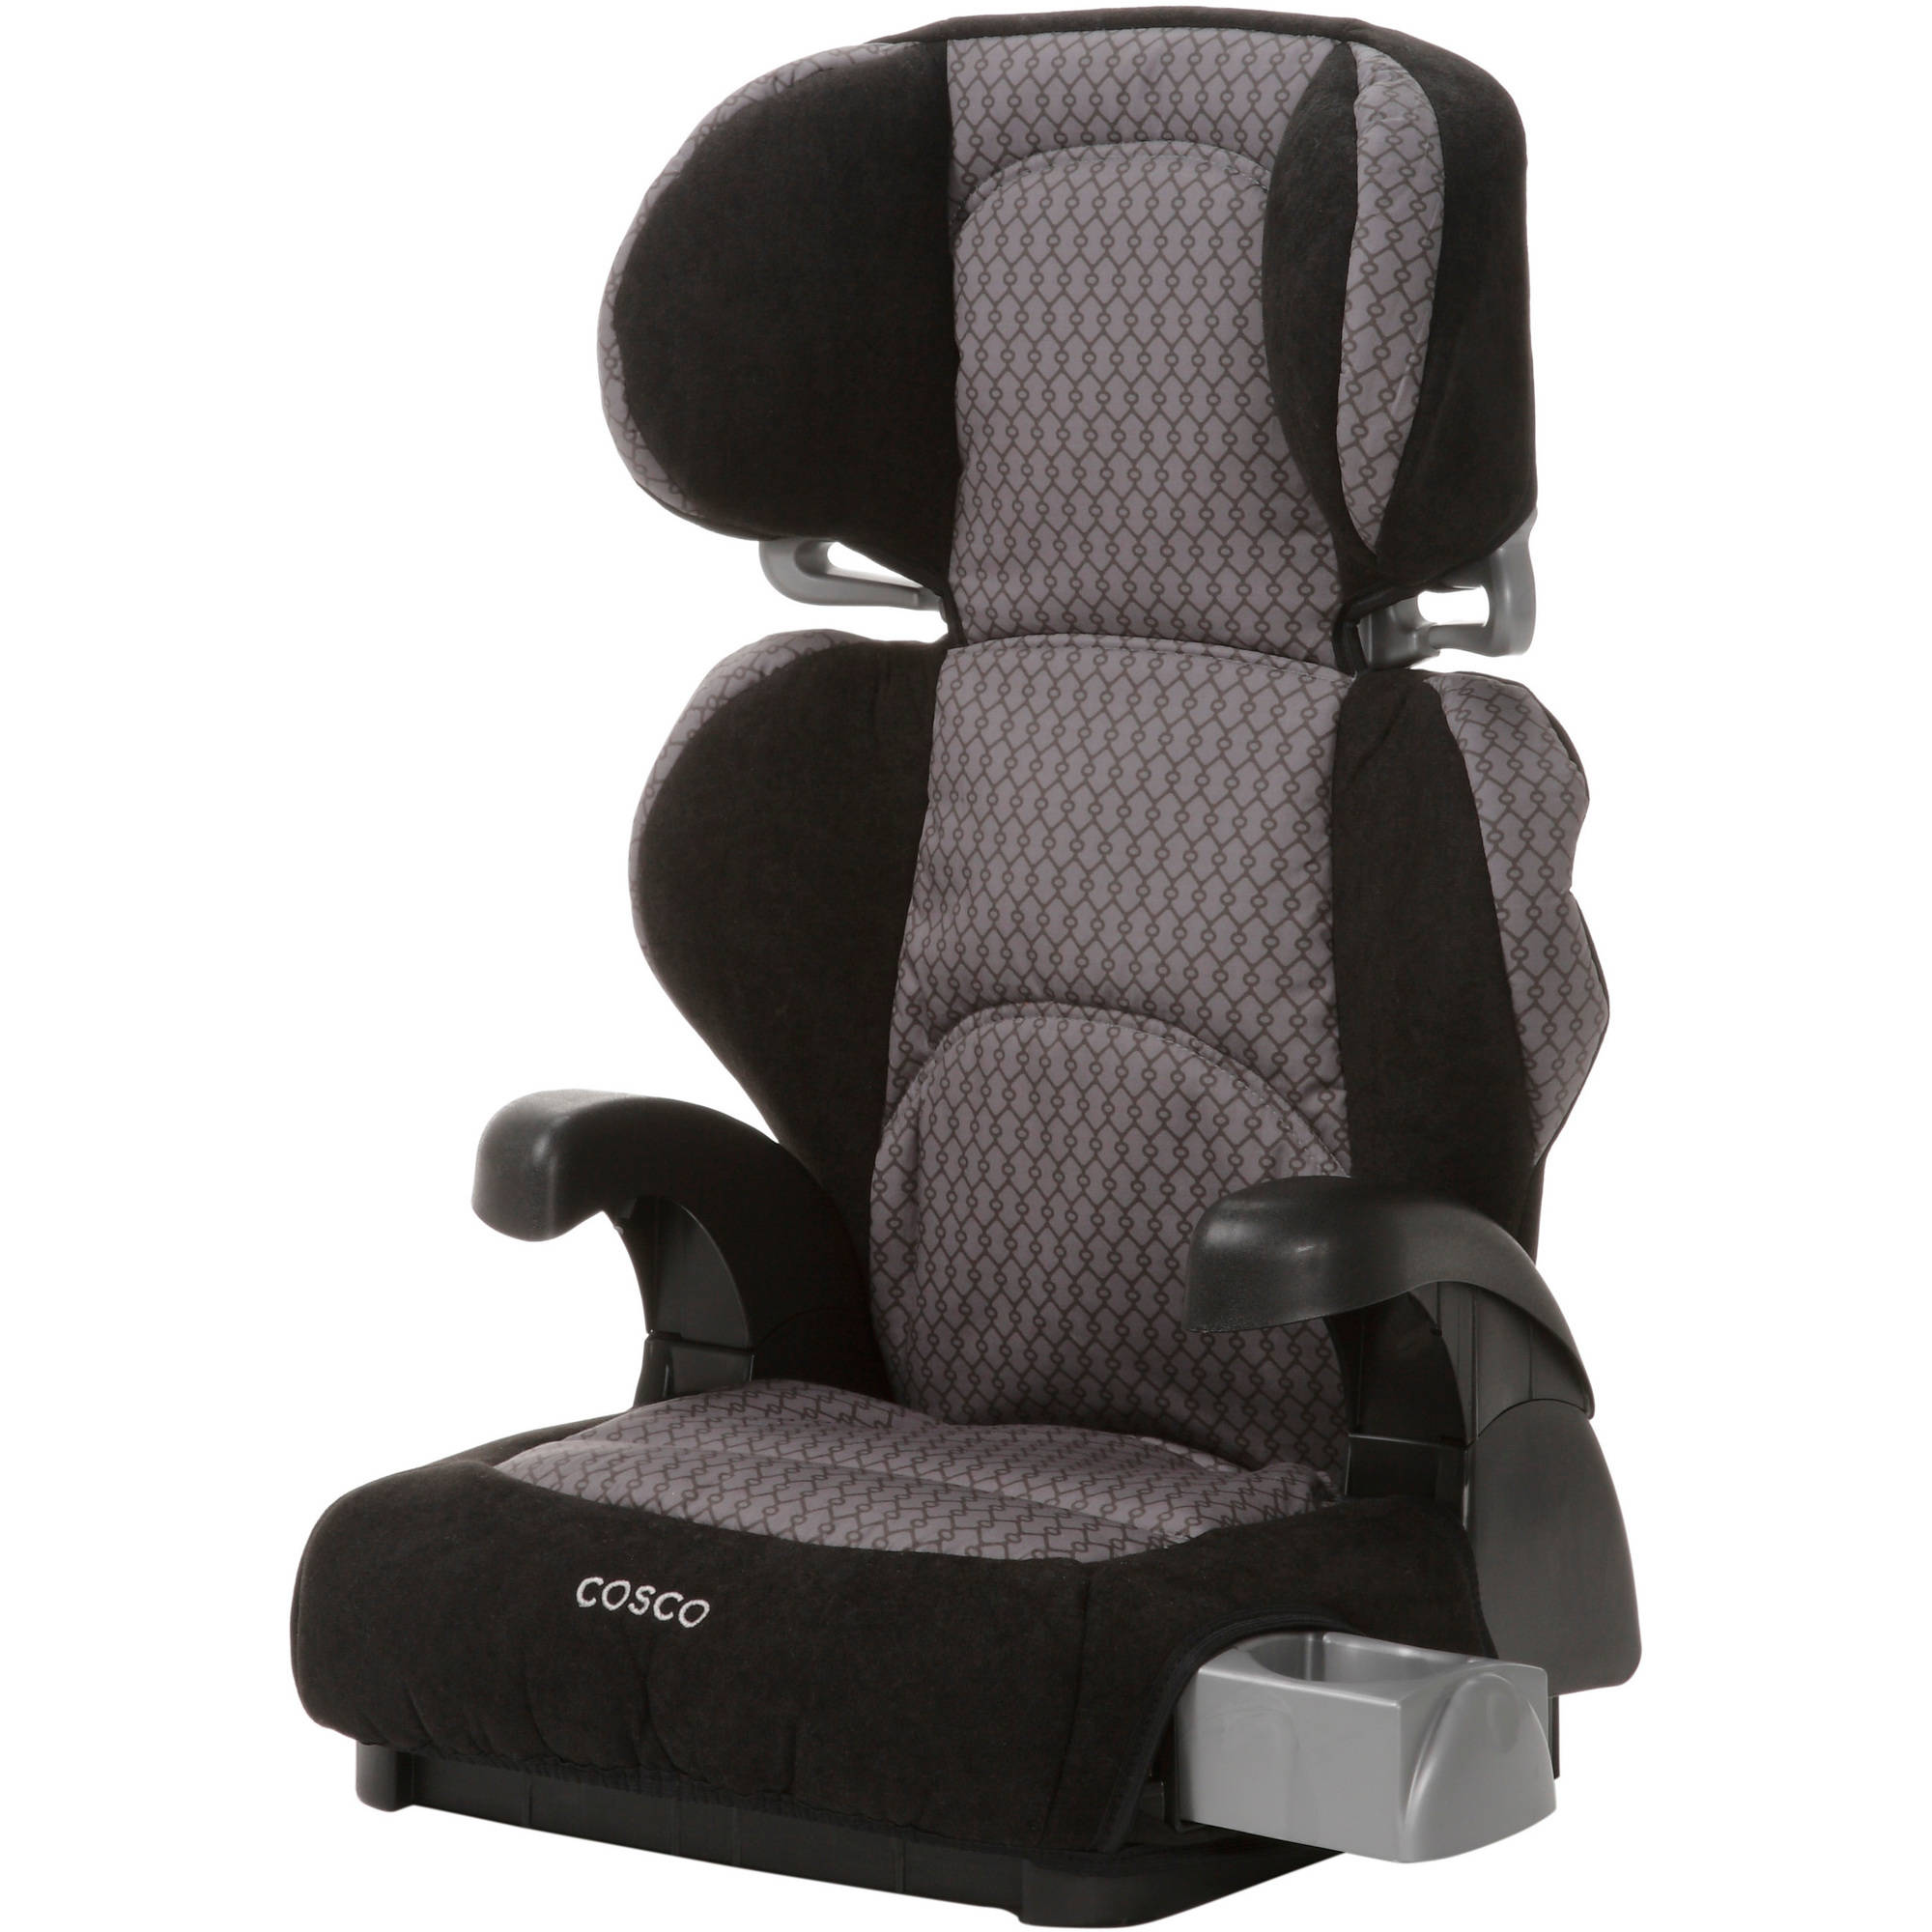 Cosco Pronto! High Back Booster Car Seat